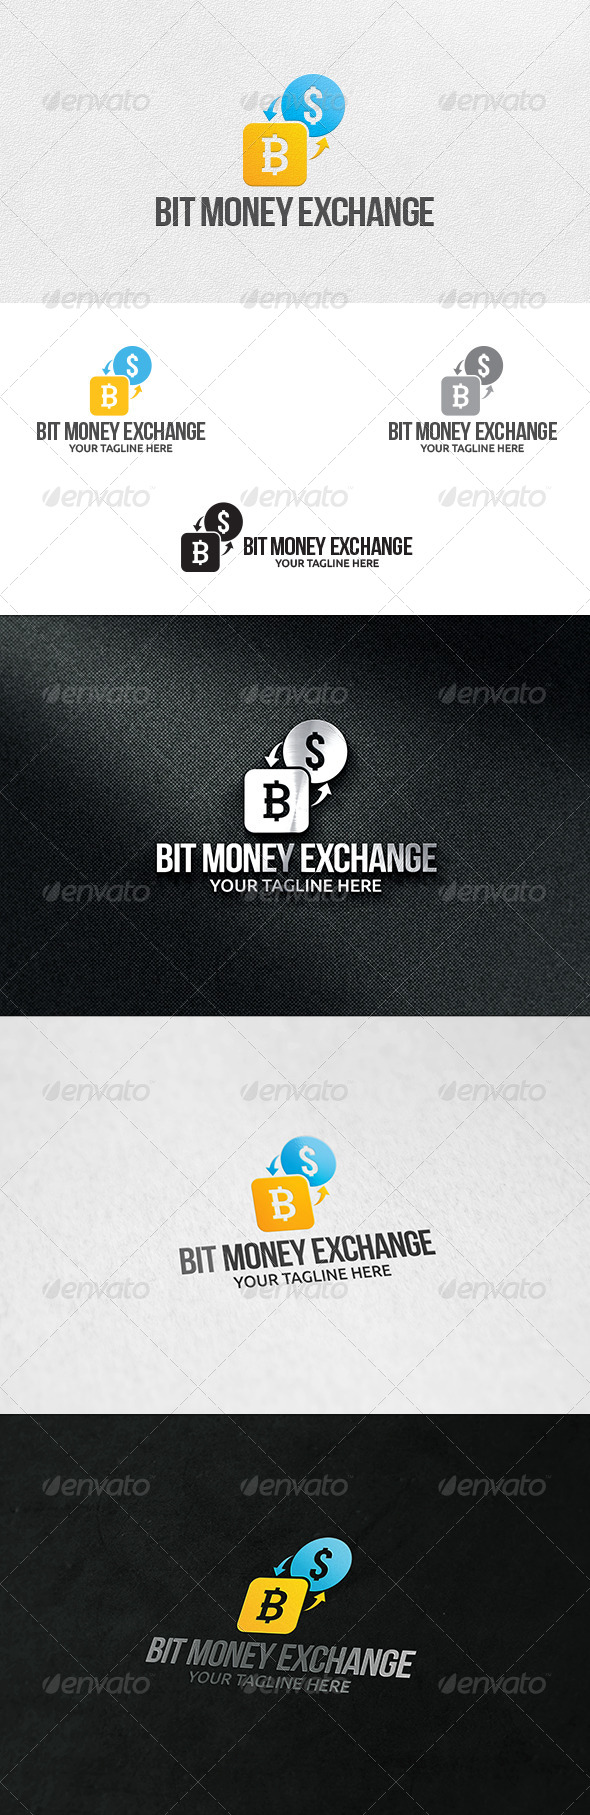 Bit Money Exchange - Logo Template - Symbols Logo Templates